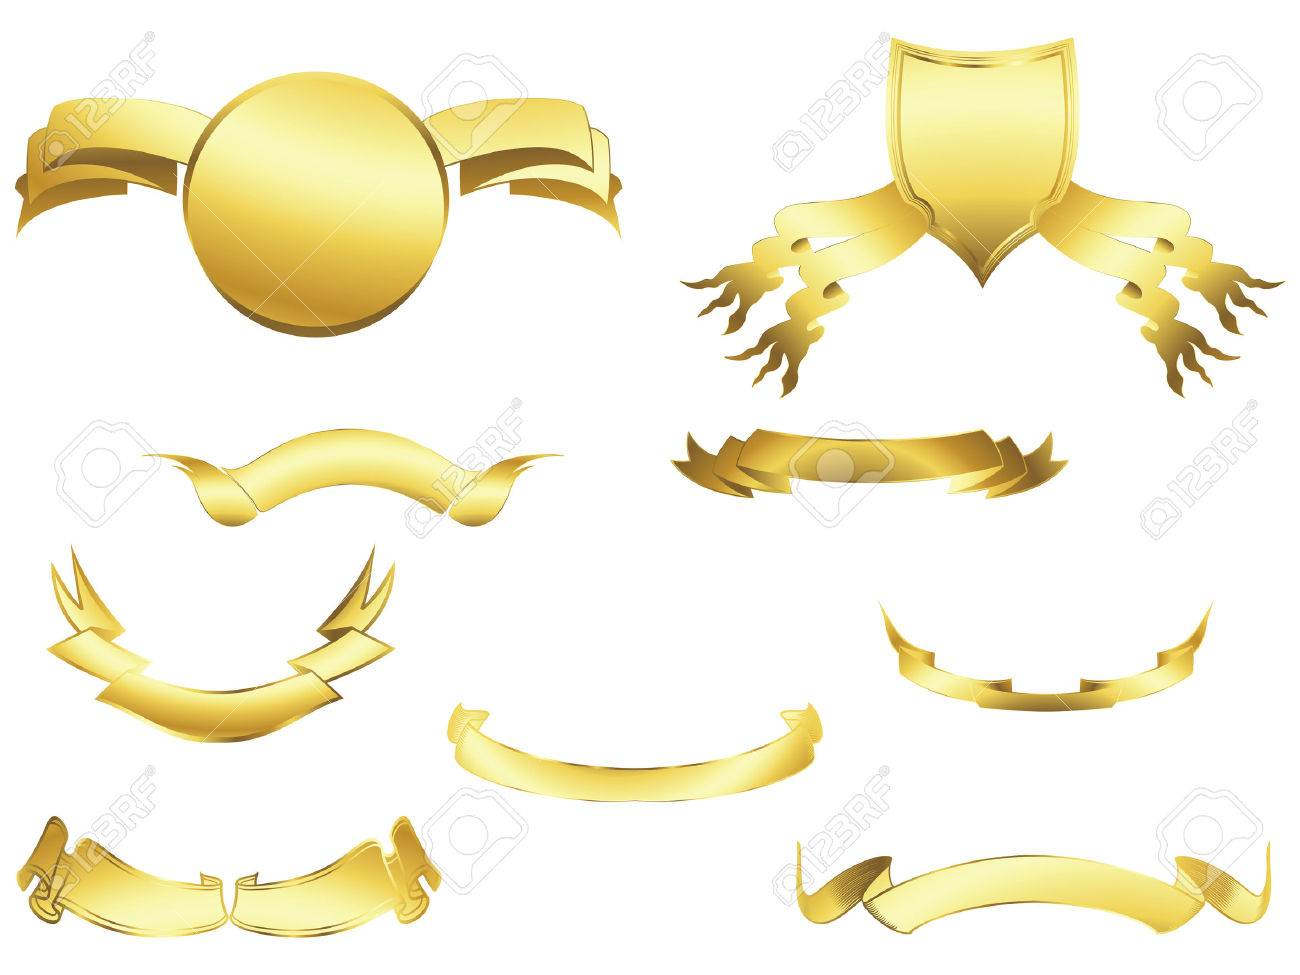 Shield and banner design elements over white background Stock Vector - 6387921